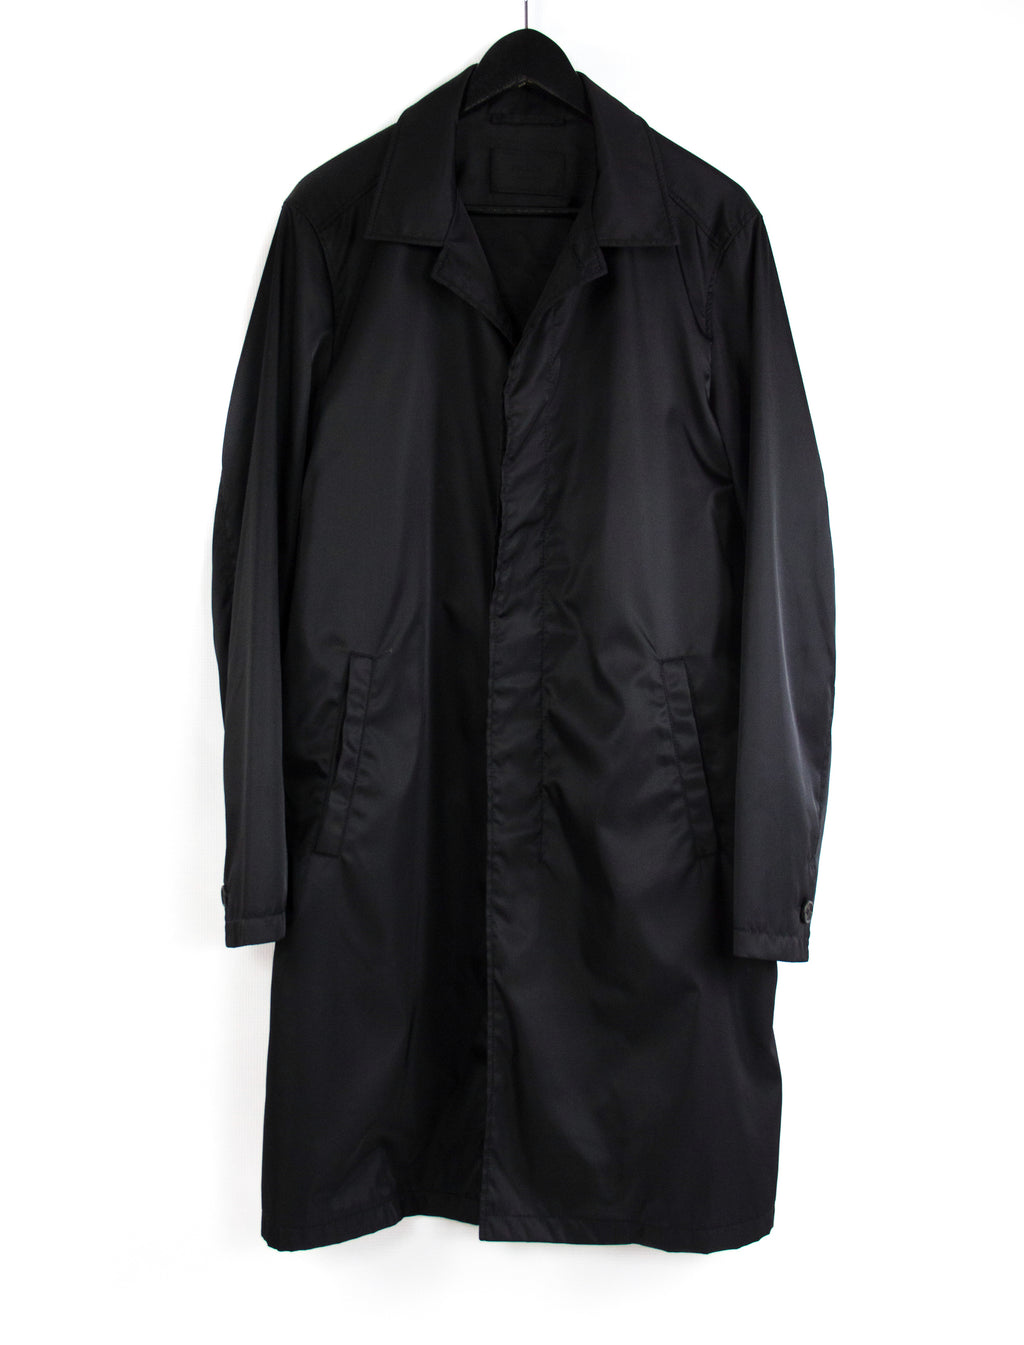 PRADA Black Mac Coat US 38, EU 48 - secondfirst